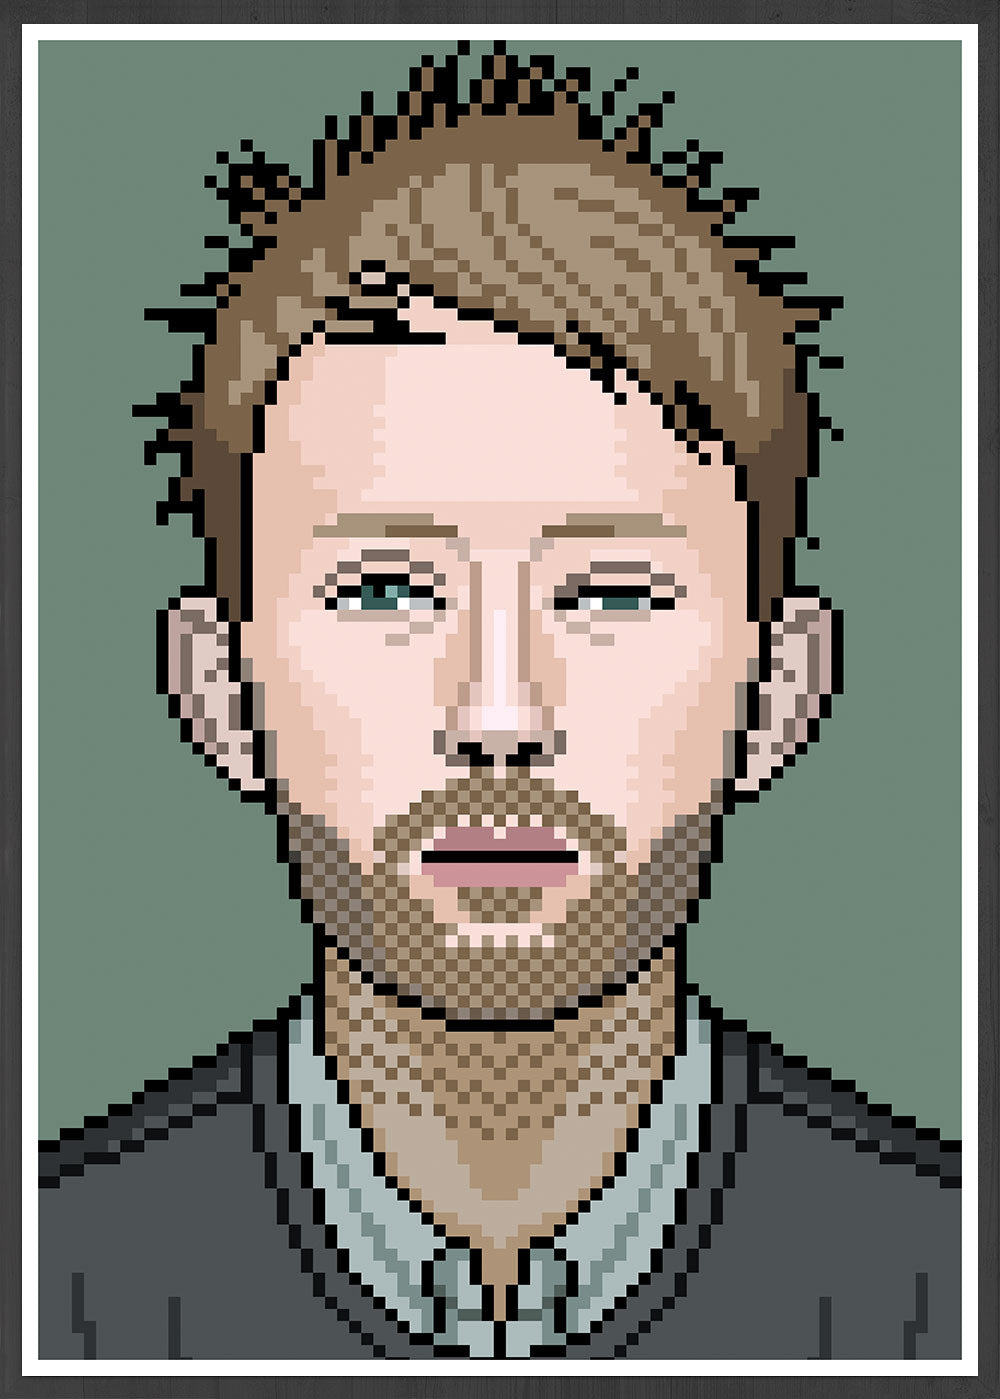 Thom Radiohead Art illustration in frame